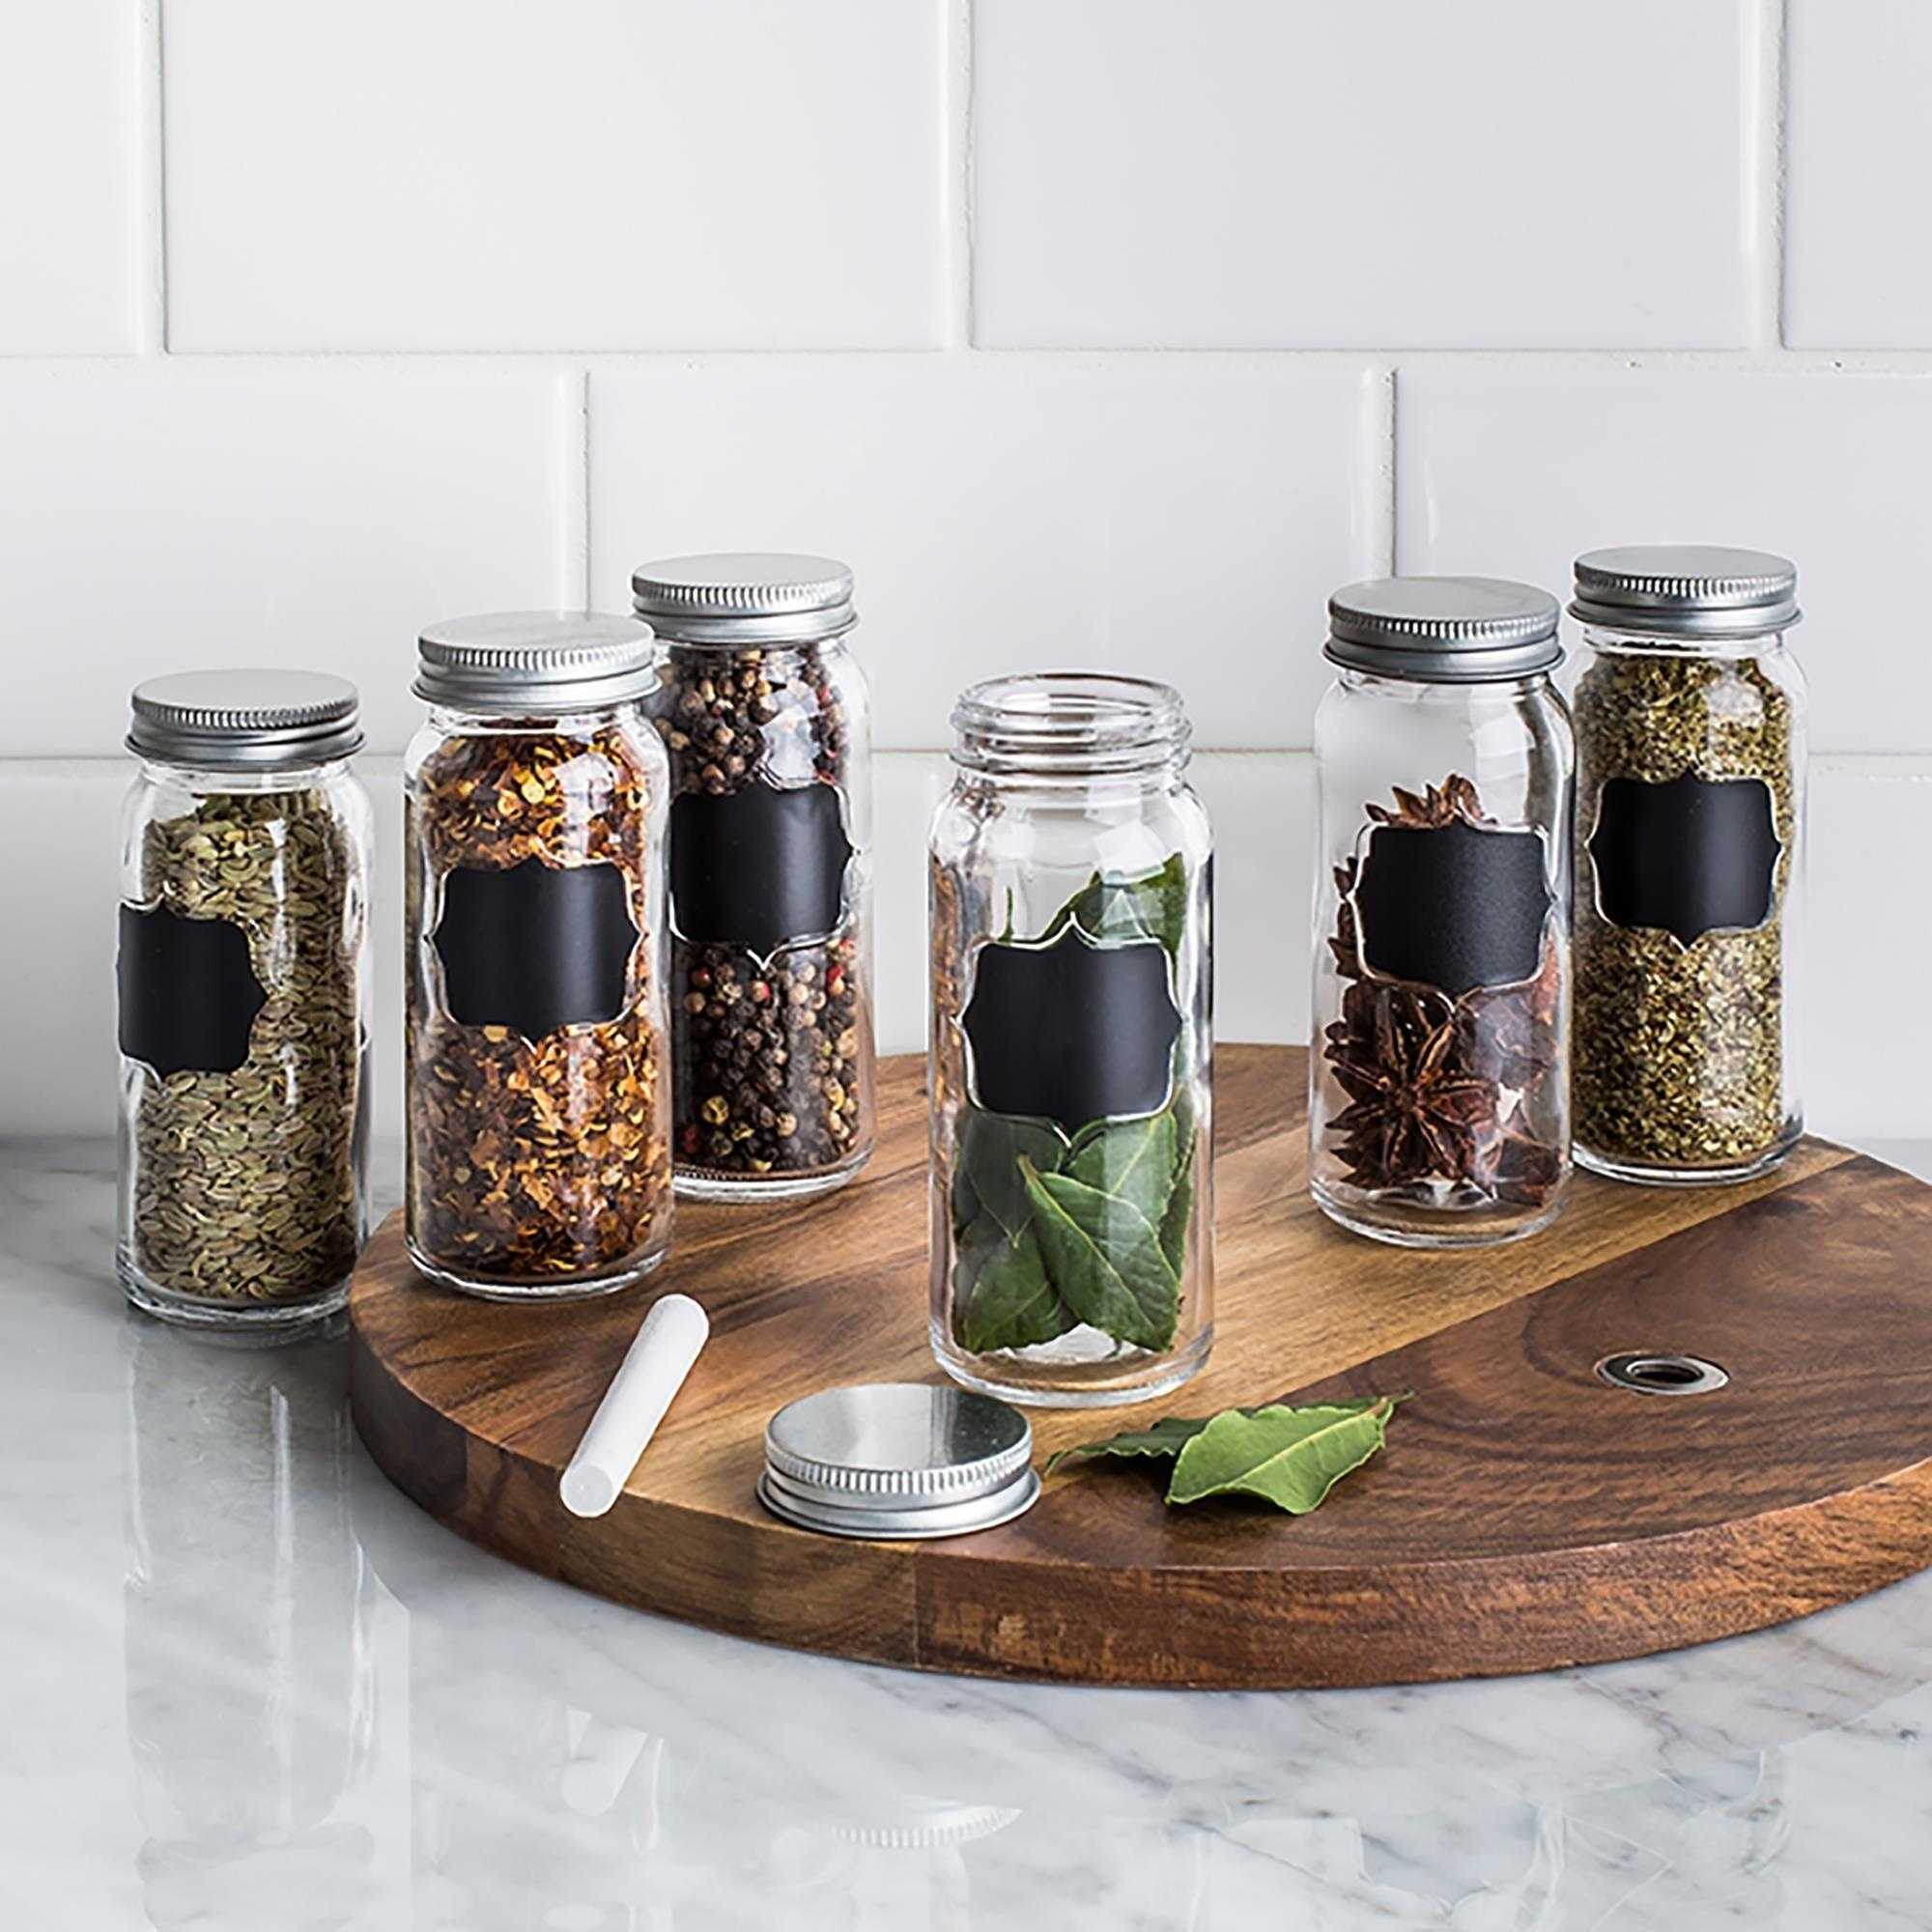 Ksp Chalkboard Glass Spice Jar Set Clear